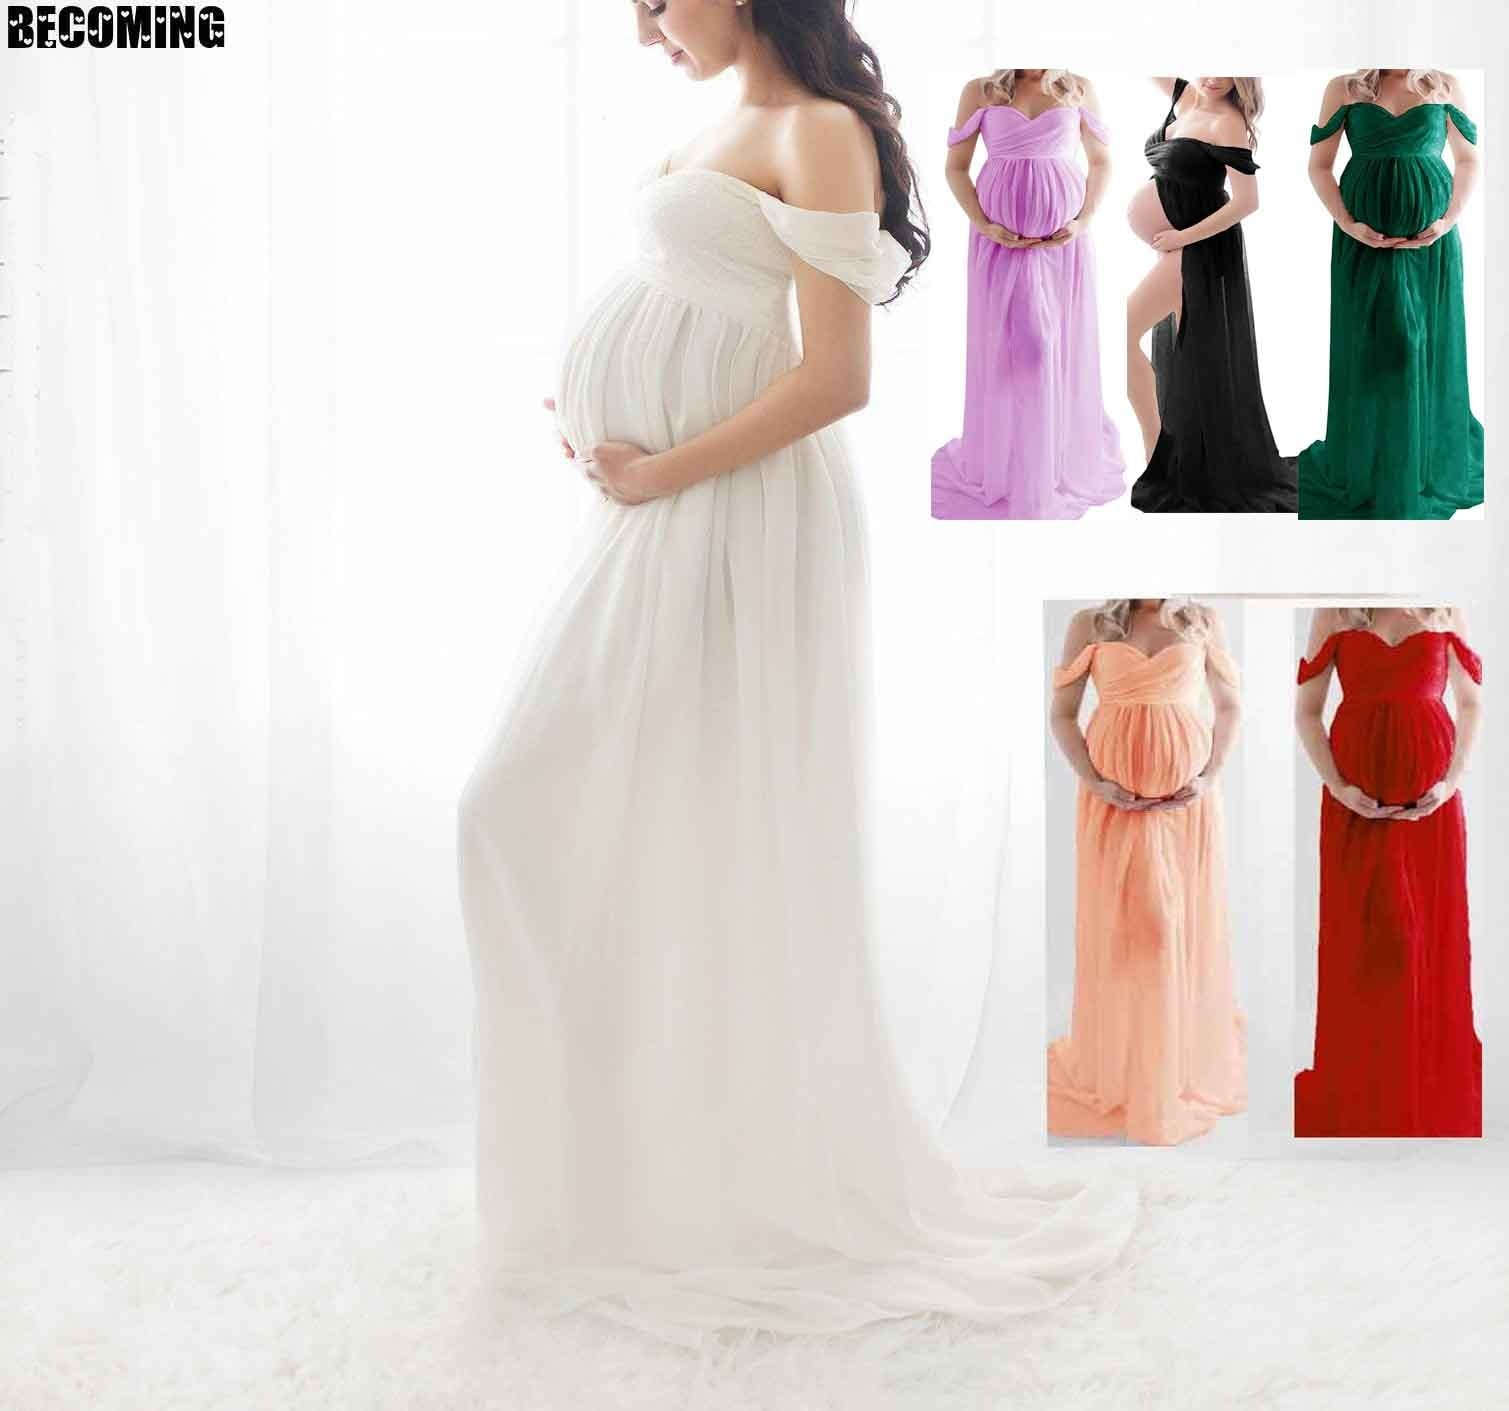 Dress Pregnant Photography White Dress Pregnancy Clothes Big Sexy Maternity Dress For Photo Shoot  Pregnant Dress Photography 26 enlarge